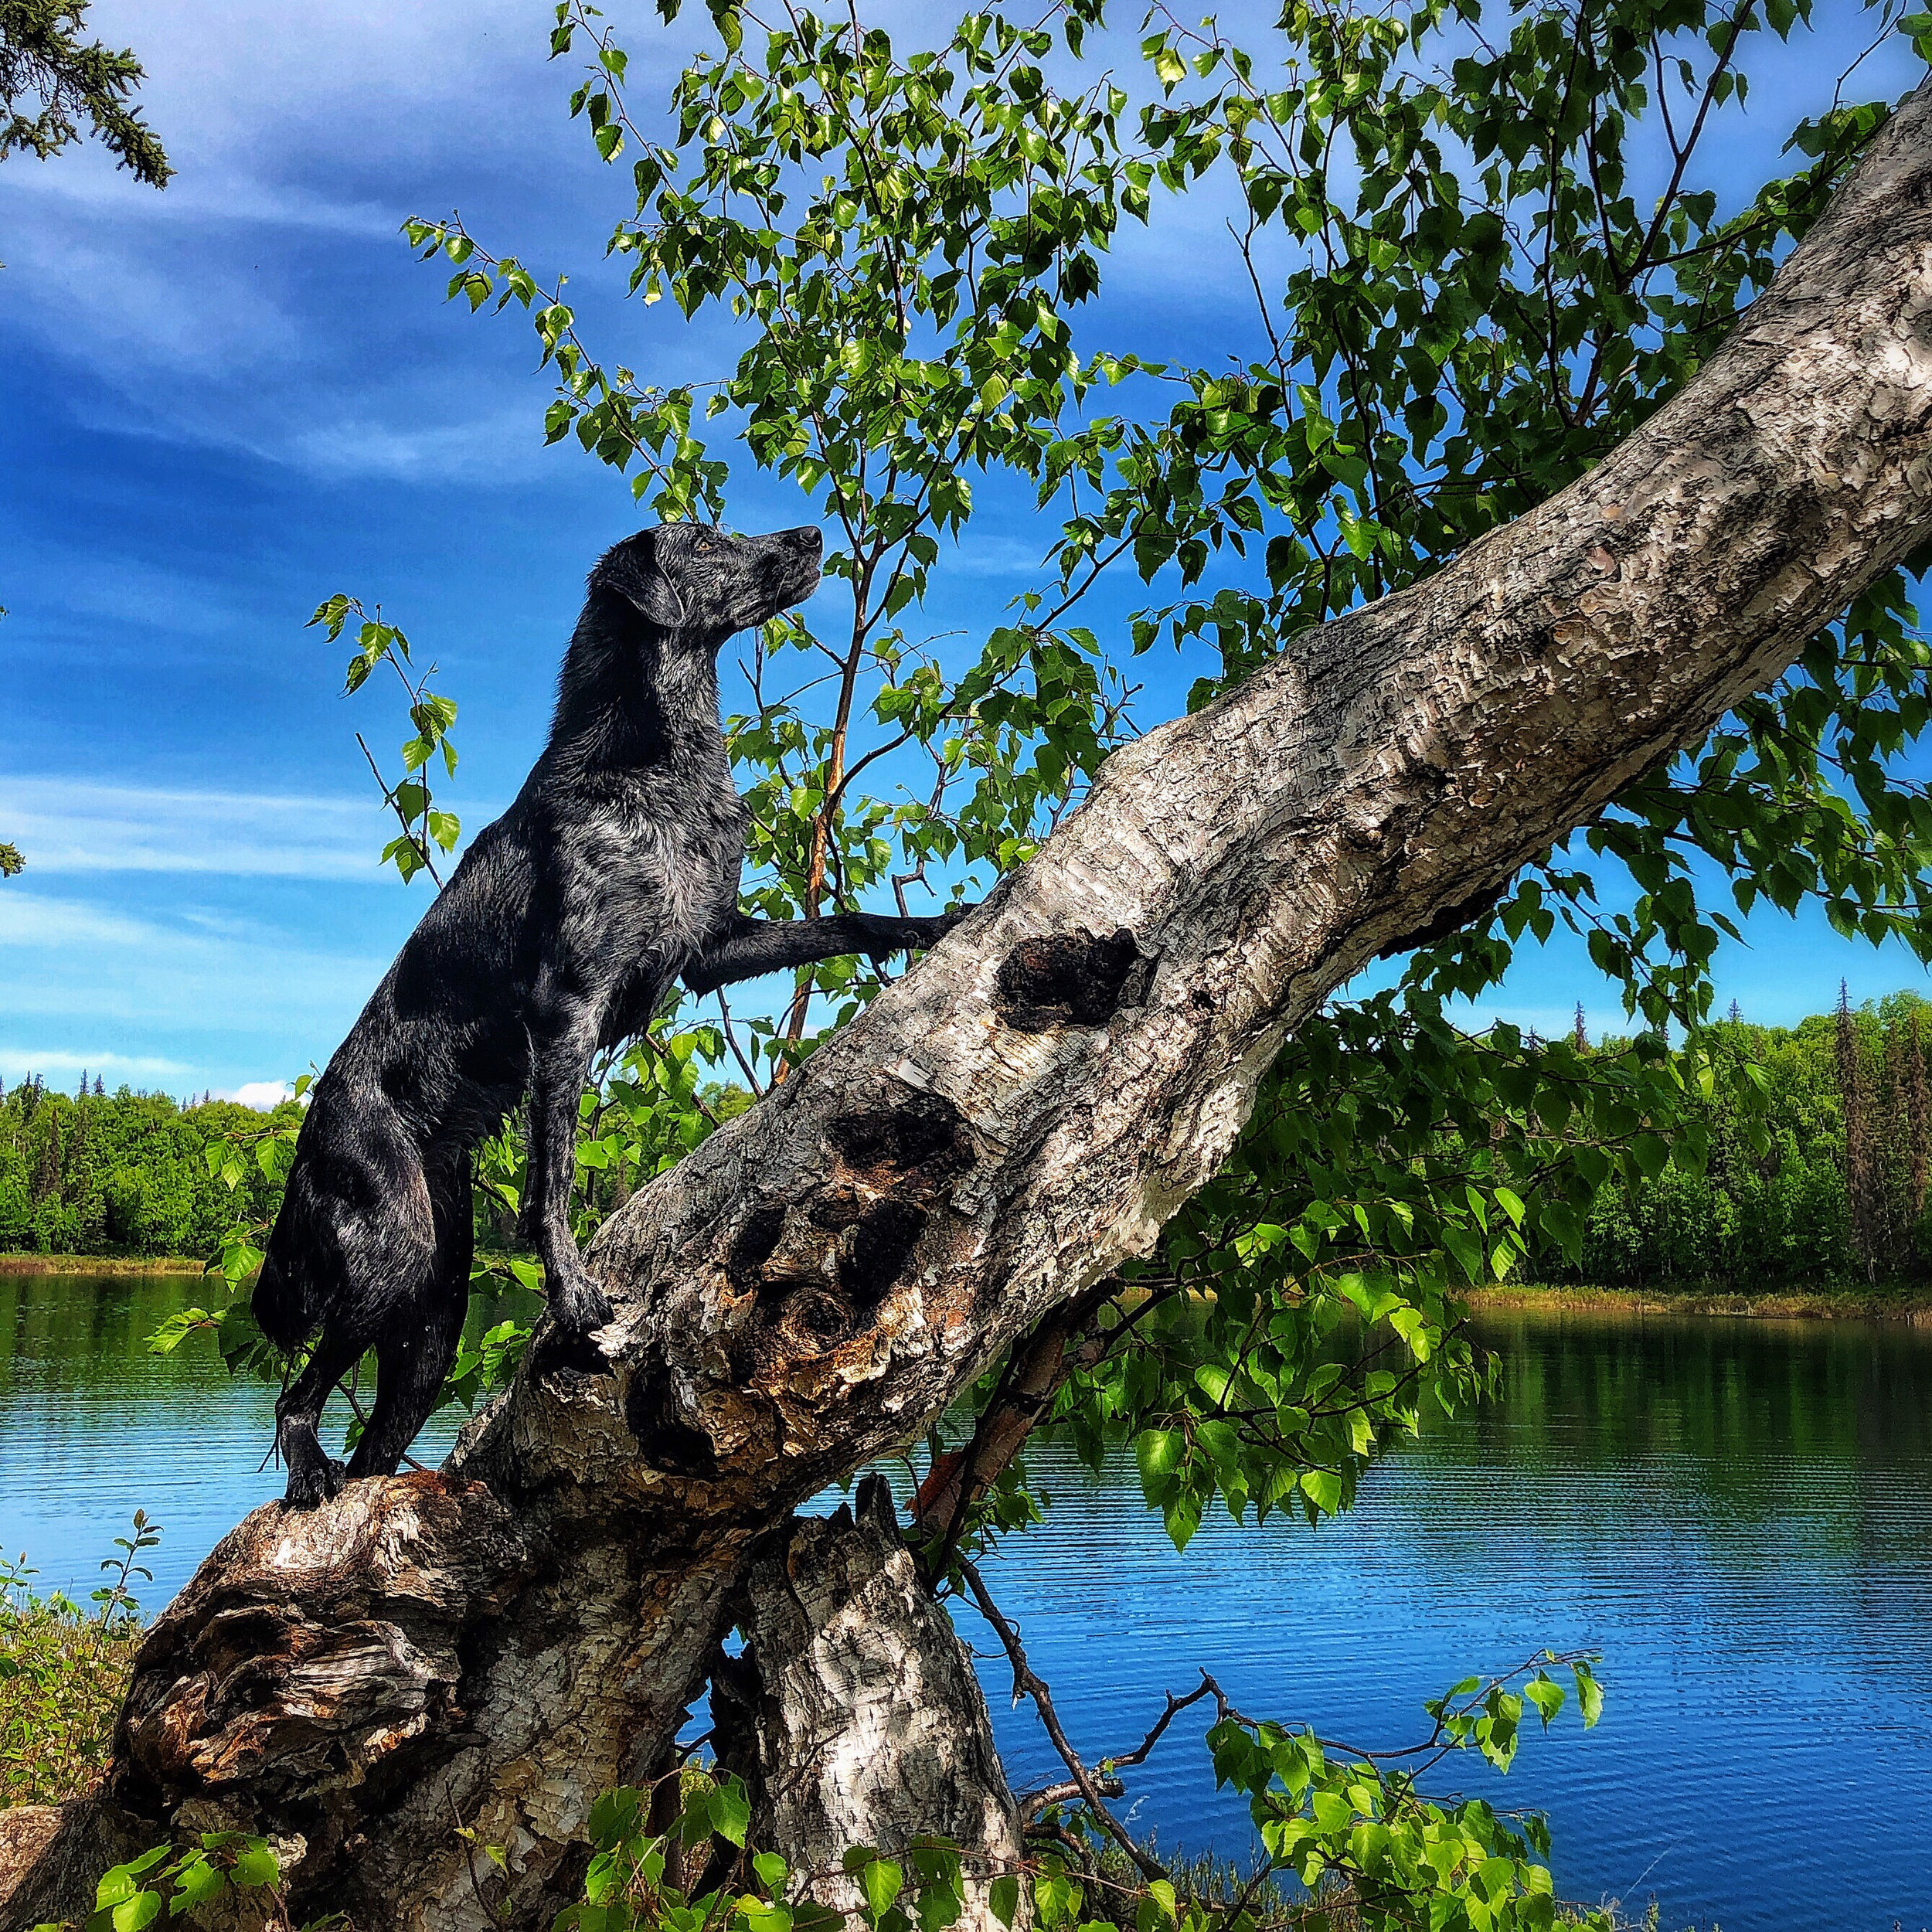 Jupiter the Catahoula Leopard Dog climbed trees in Talkeetna Alaska all summer!